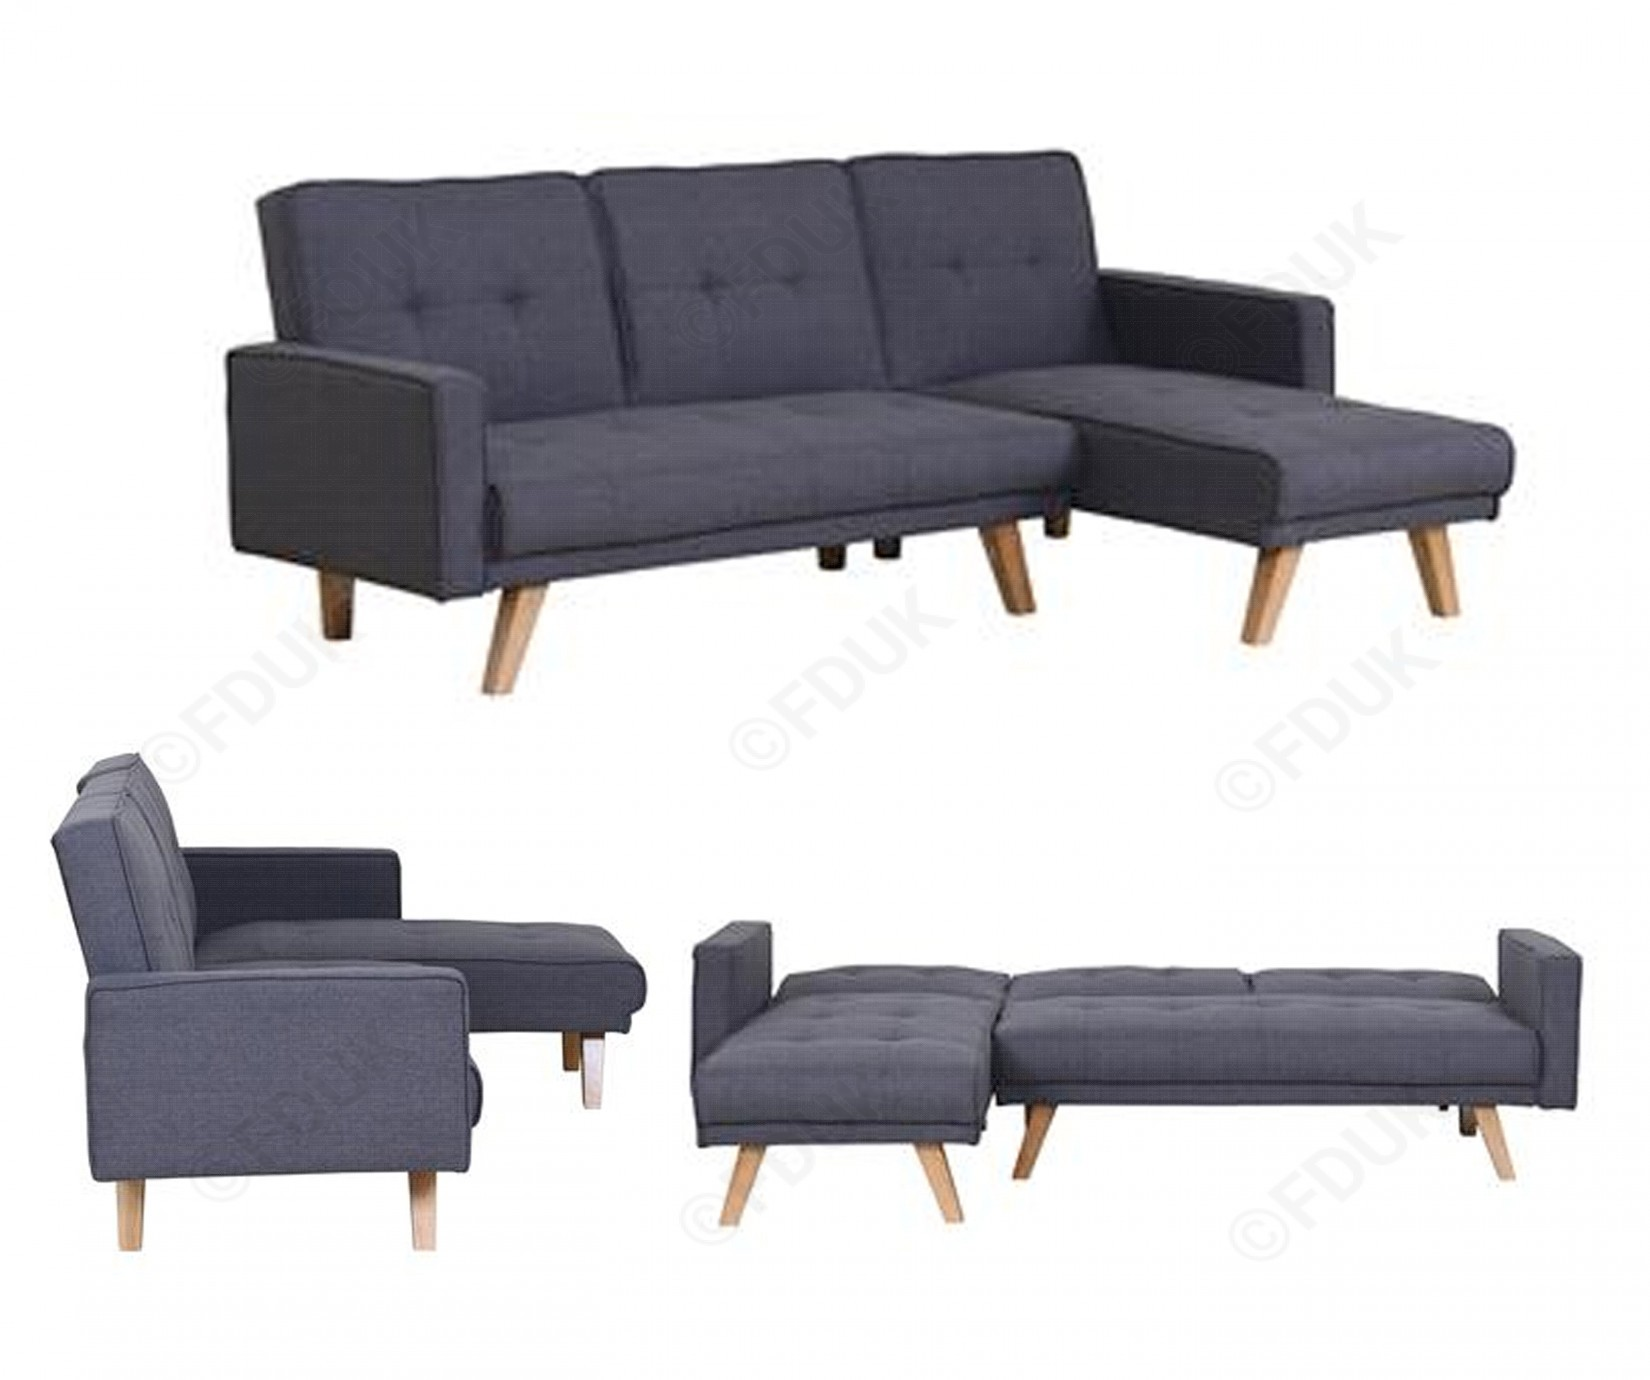 Box Type Sofa Designs: Beautiful L Shaped Sofa Bed Wallpaper